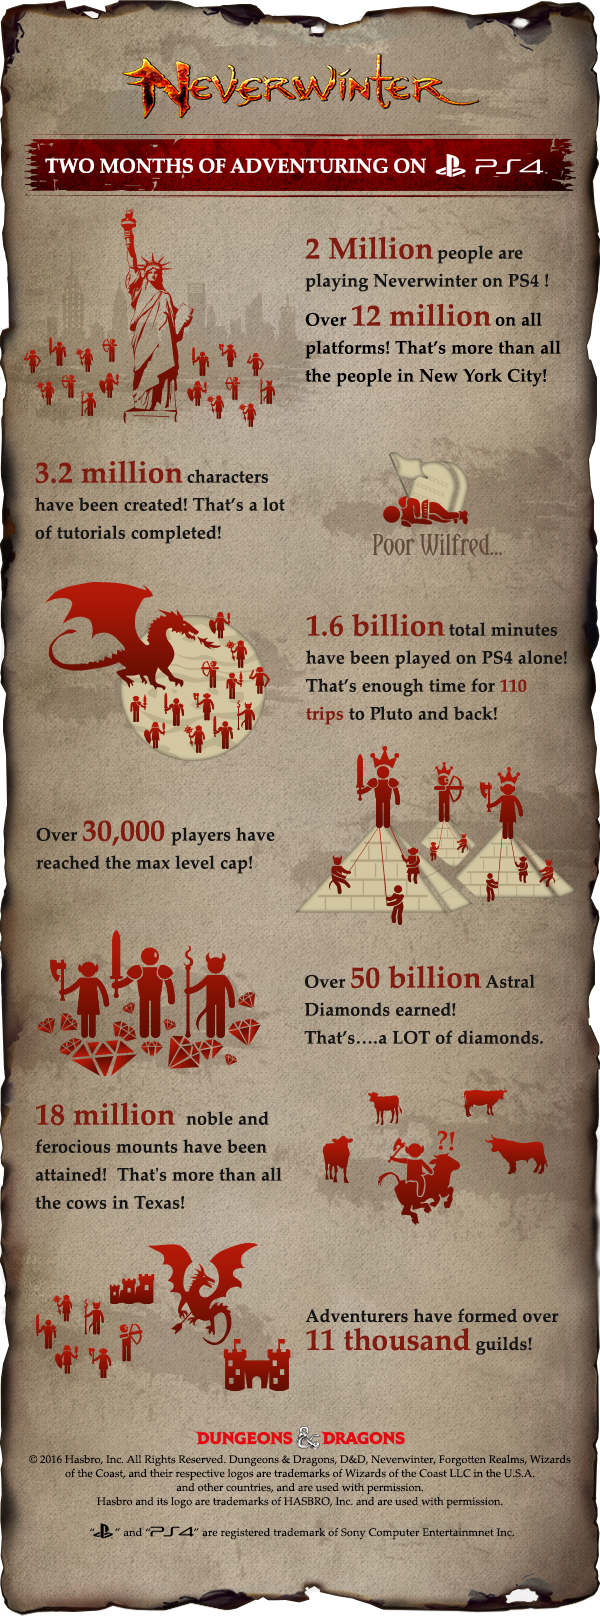 neverwinter-ps4-infographic